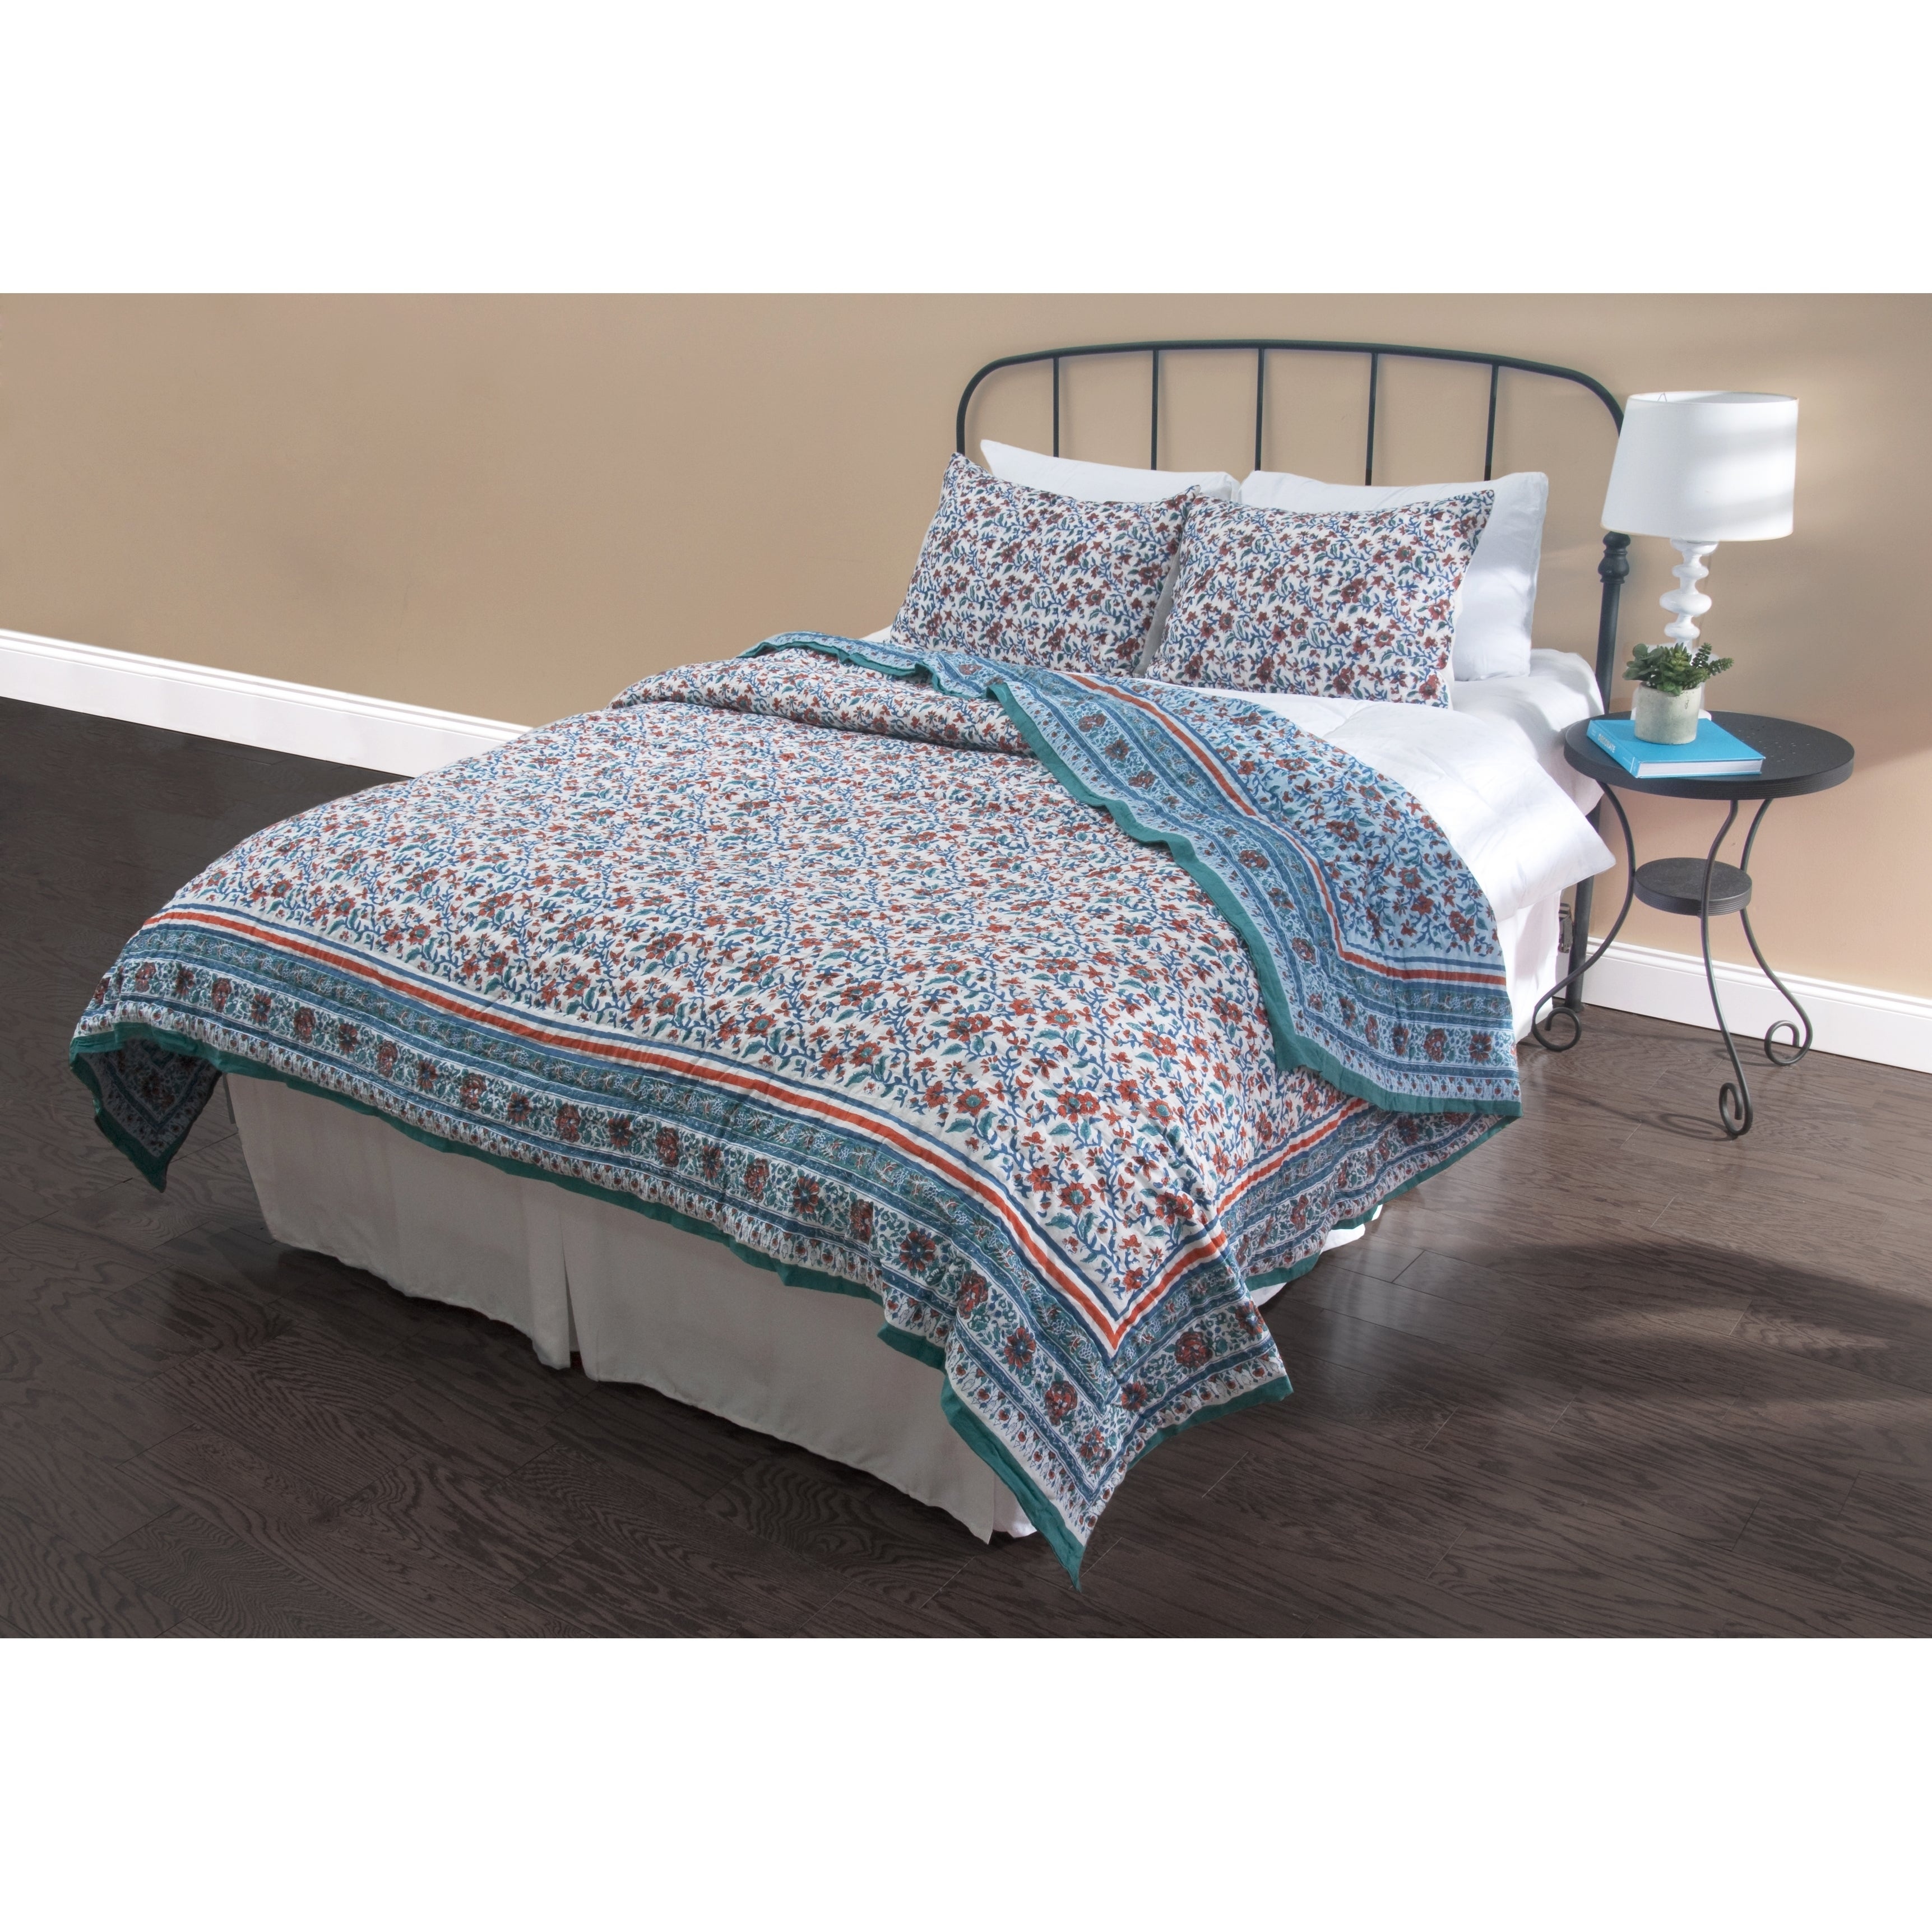 Shop Rizzy Home Grey And Blue Quilt Set Overstock 10468890